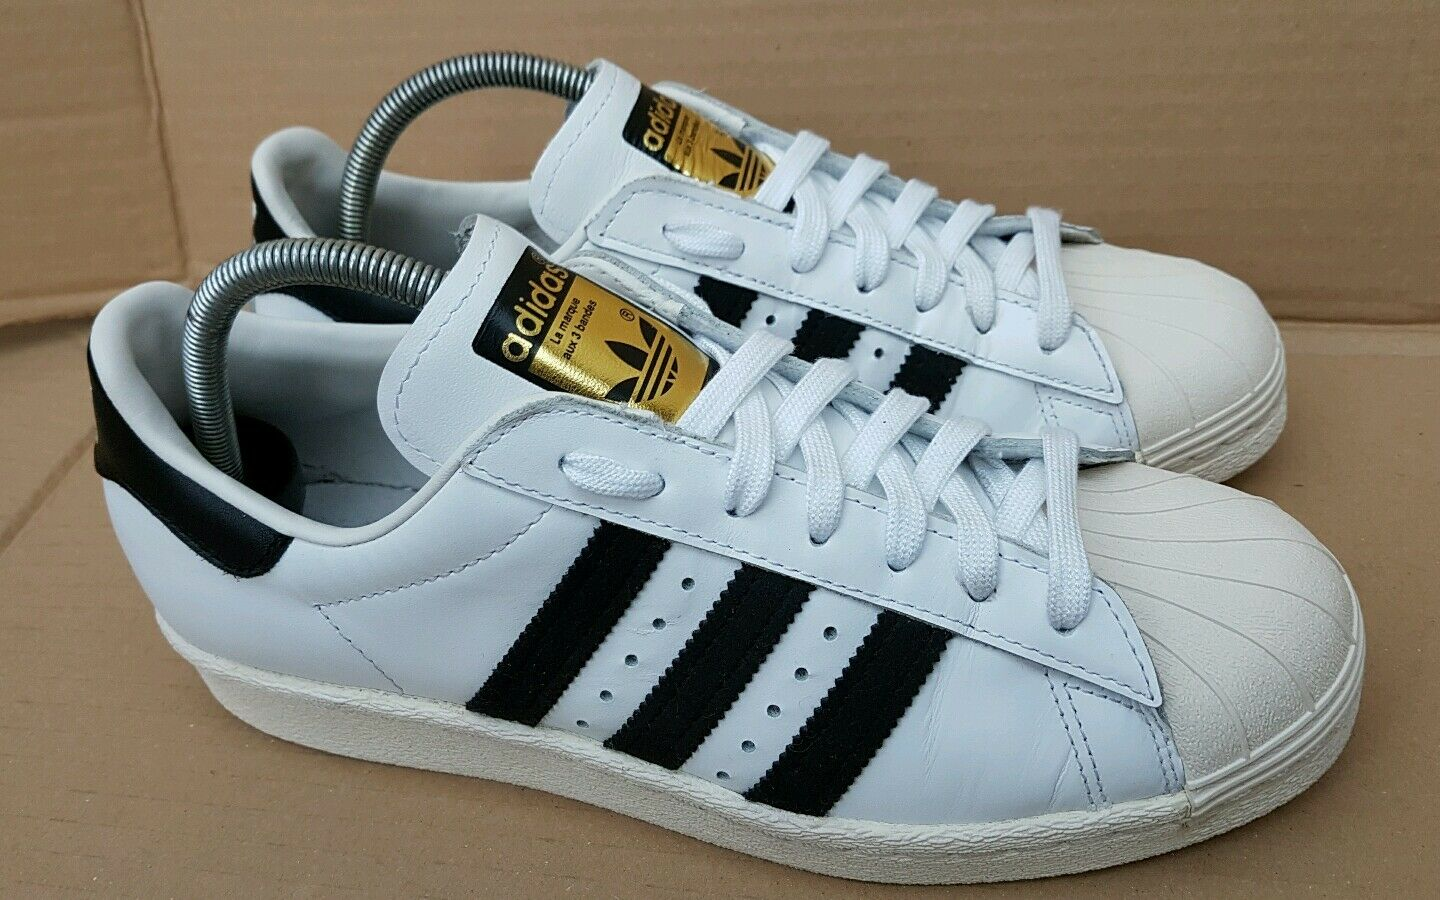 ADIDAS SUPERSTAR 80's LIMITED EDITION TRAINERS SIZE 5 Noir blanc  IMMACULATE